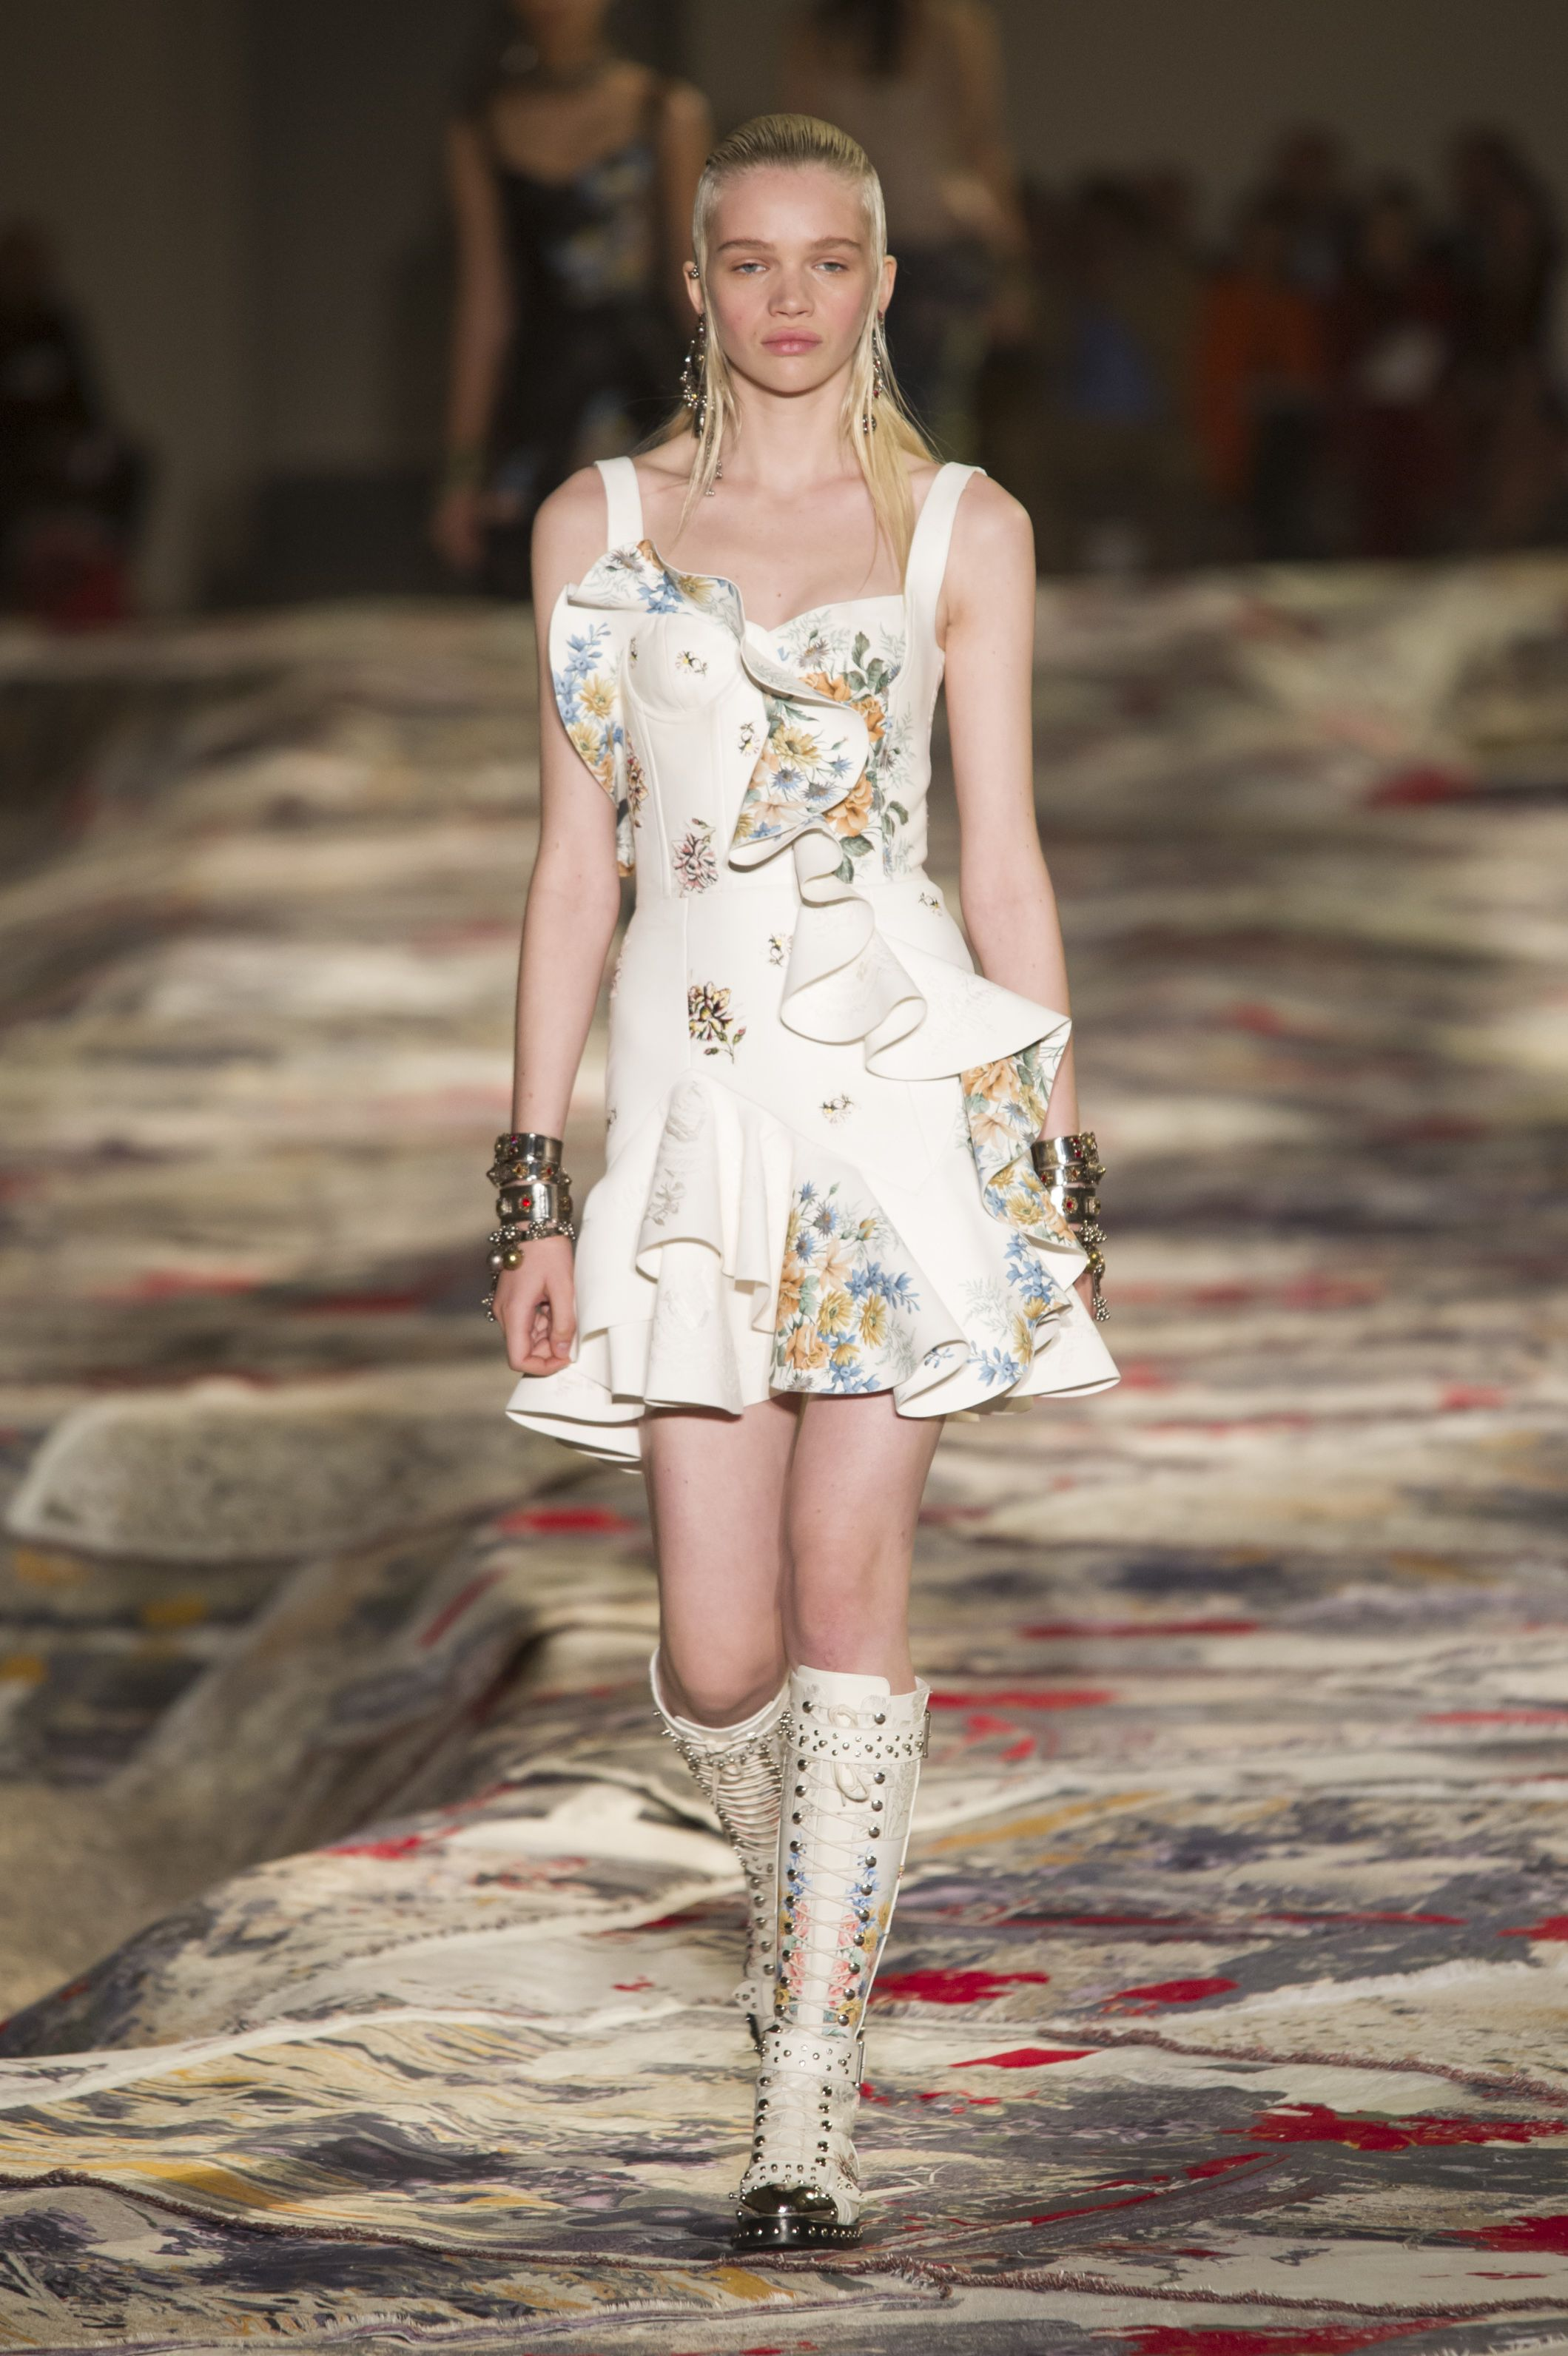 Pin by Victoria on ss 17 catwalk Pinterest Catwalks and Fashion